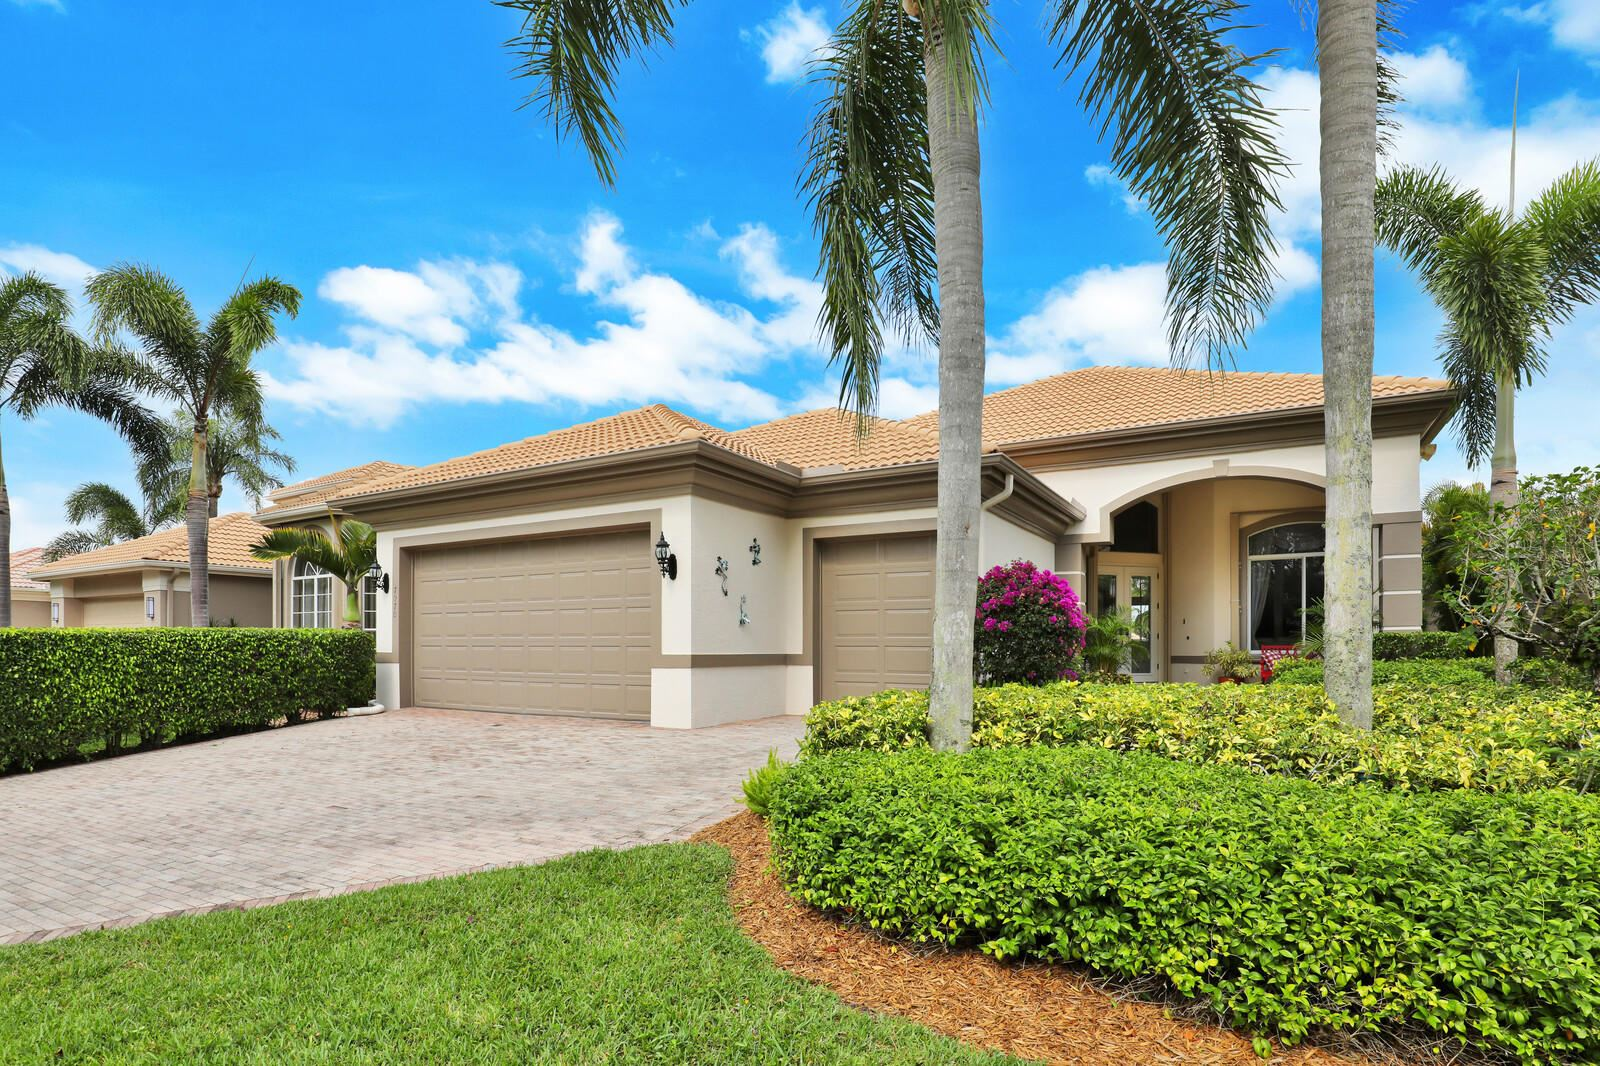 Photo of 7970 Sandhill Court, West Palm Beach, FL 33412 (MLS # RX-10710621)